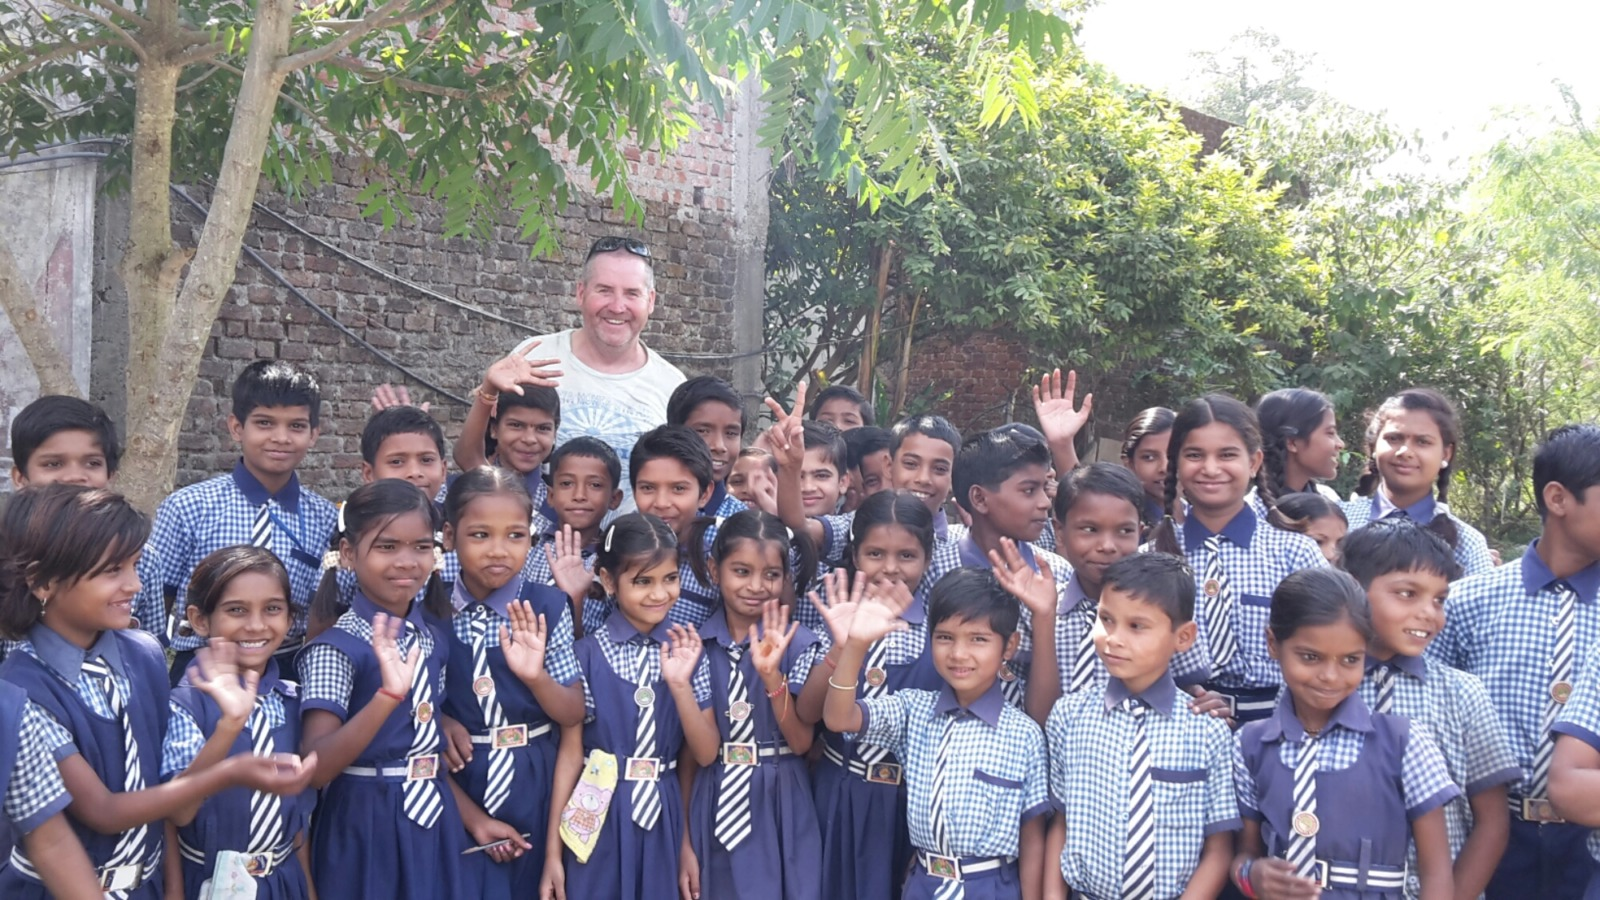 Garry McGivern meeting school children at a school in Sagar.